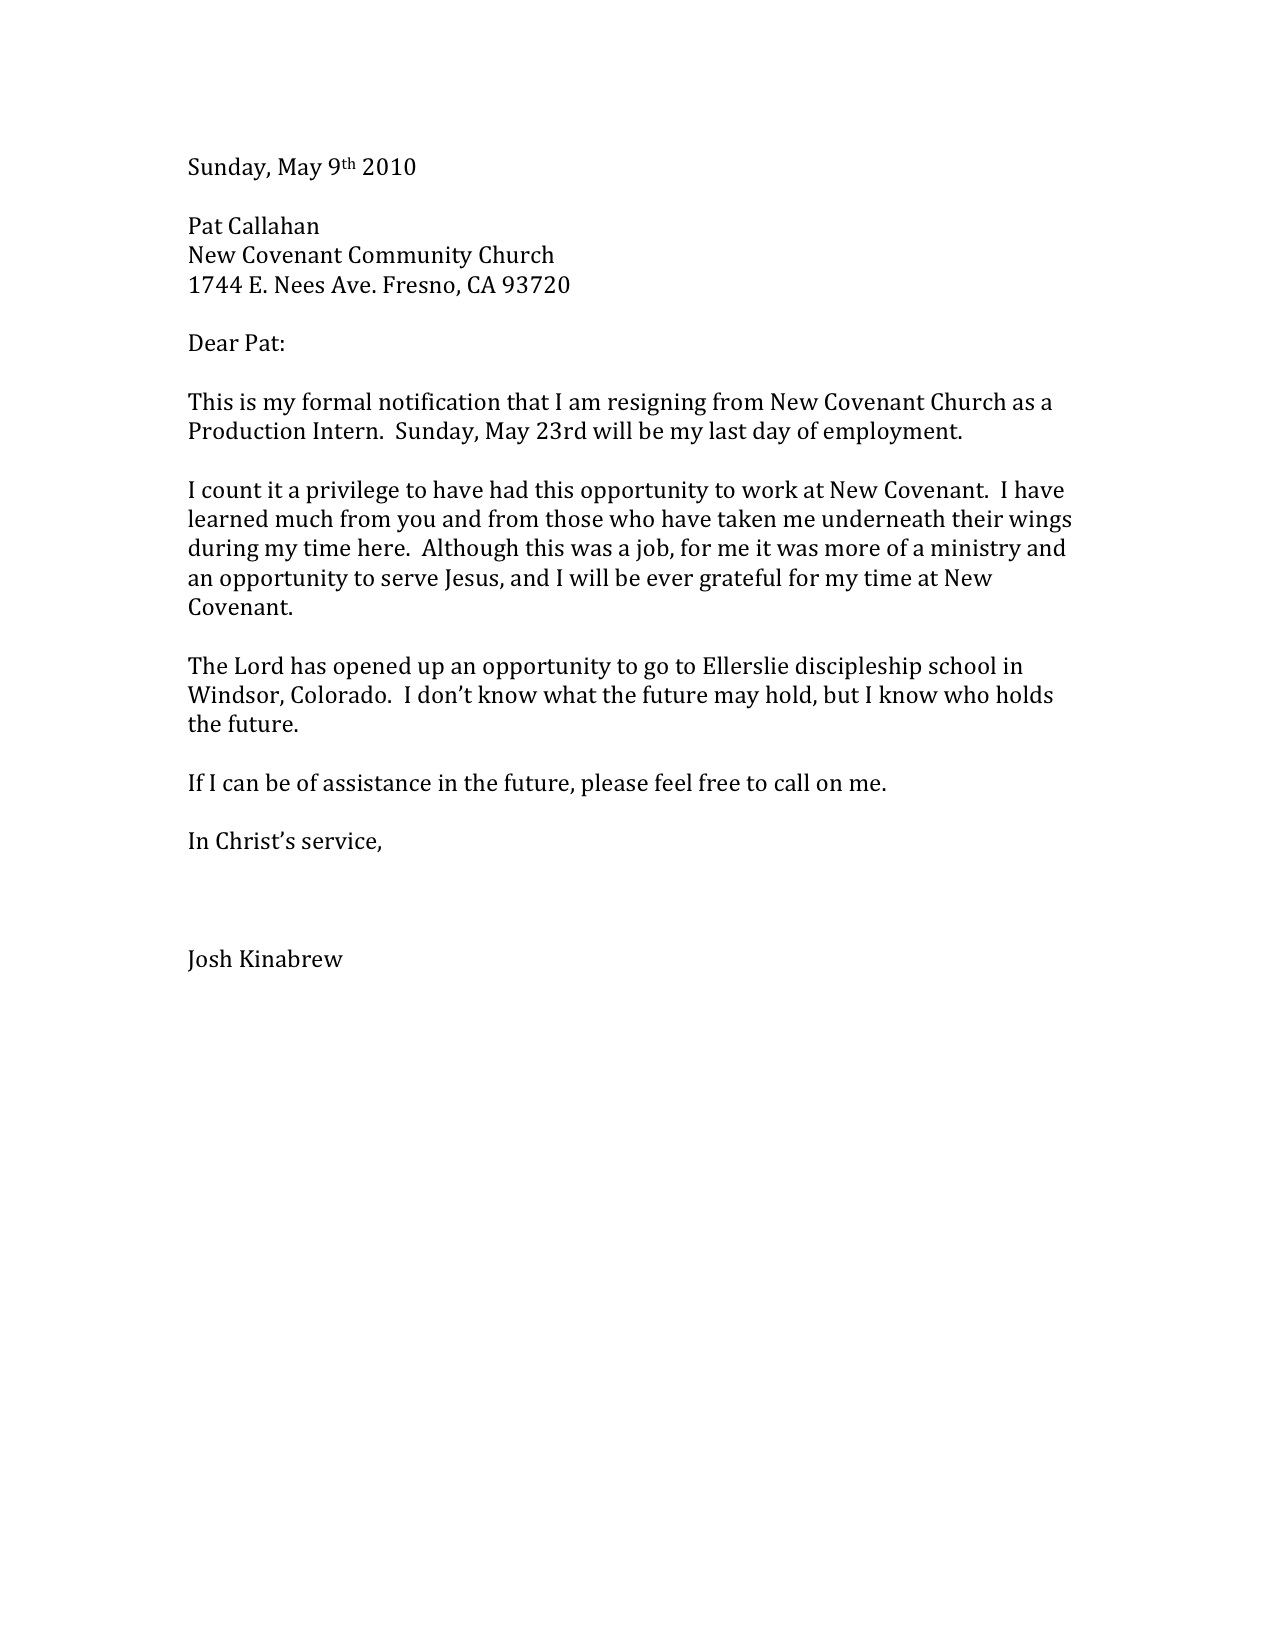 12 Cool Letters Of Resignation Sample